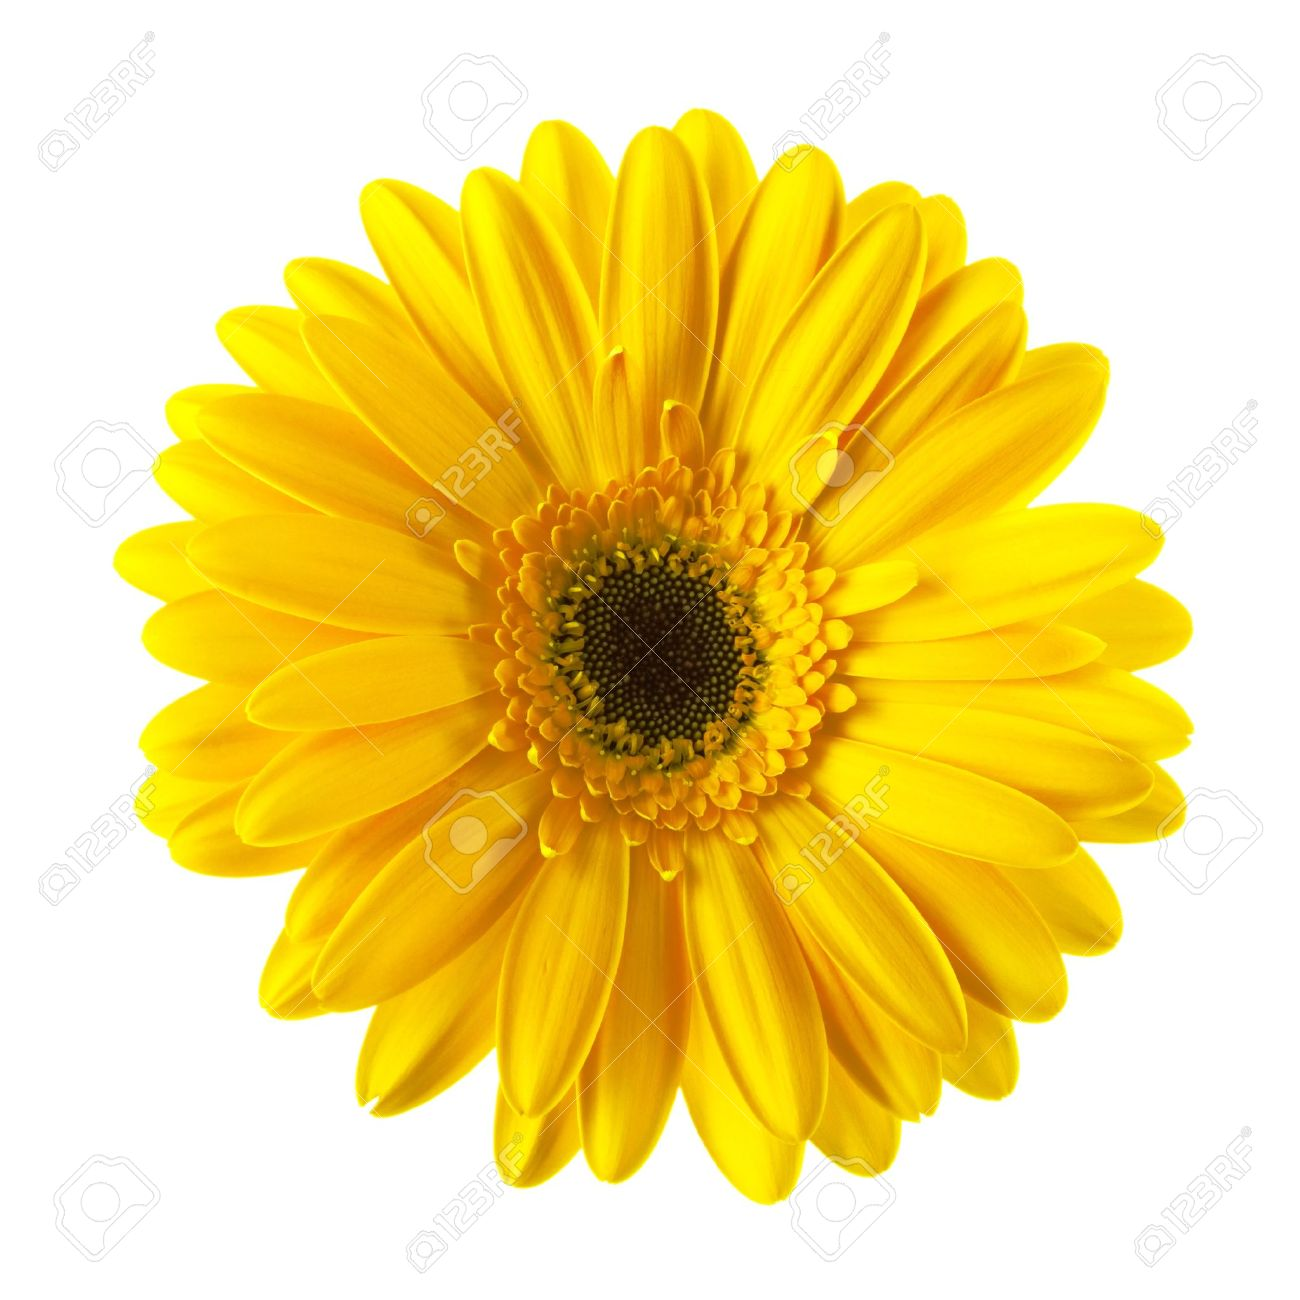 Yellow Daisy Flower Isolated On White Background Stock Photo